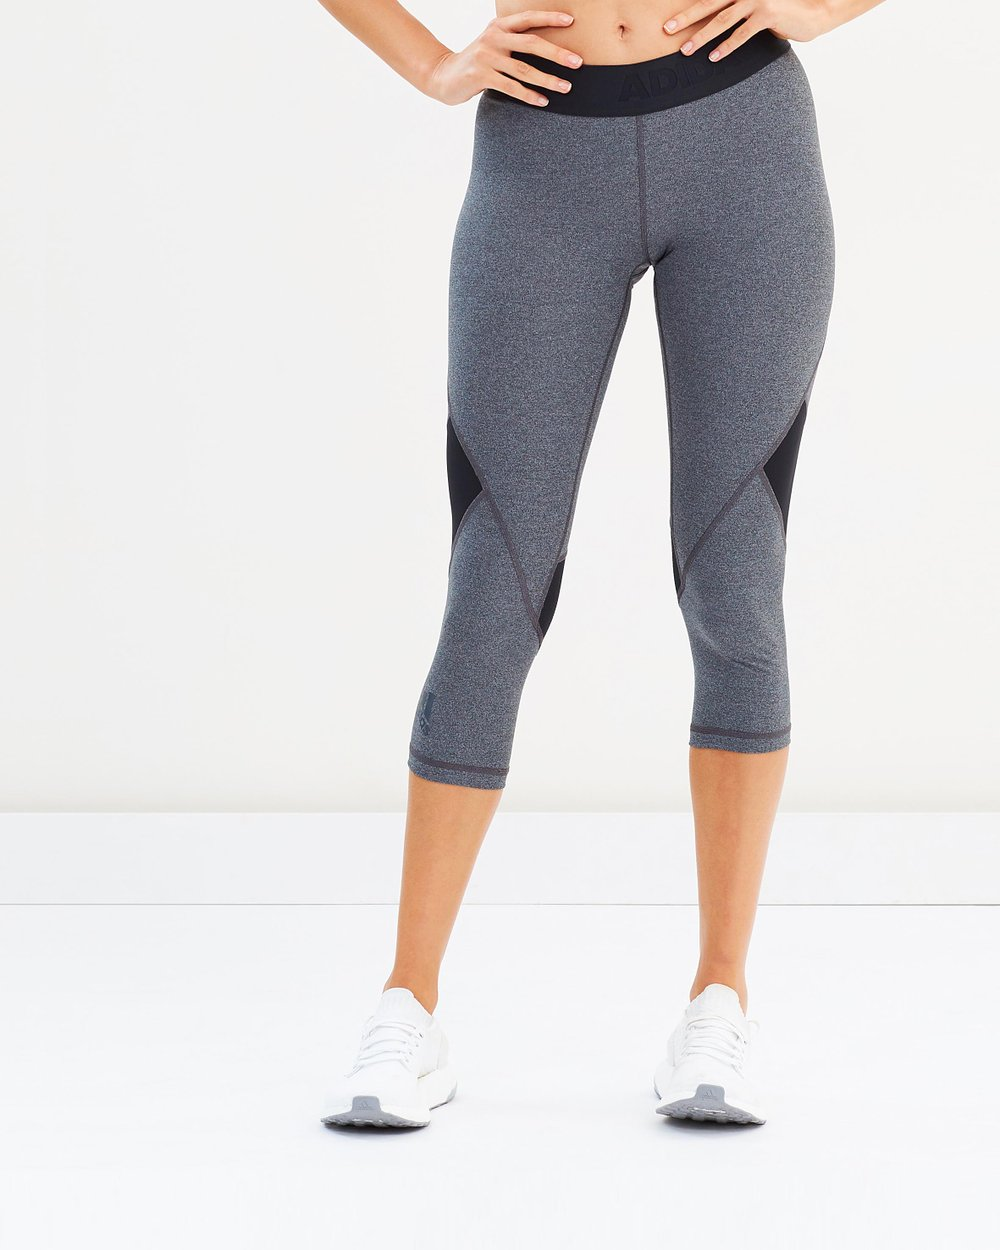 6aa65e3dfd Alphaskin Sport 3/4 Tights by adidas Performance Online | THE ICONIC |  Australia